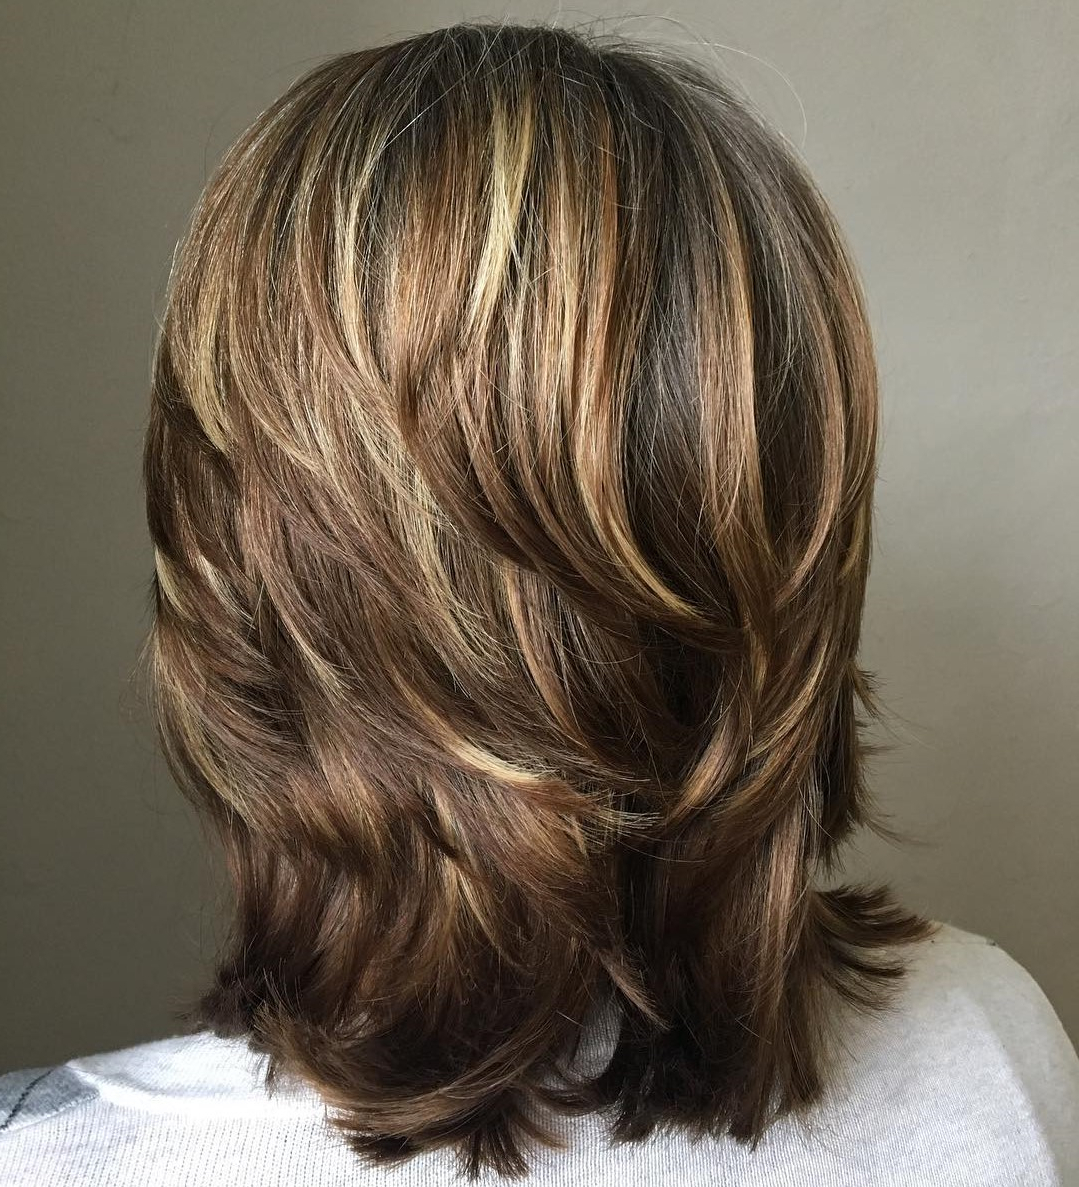 50 Most Universal Modern Shag Haircut Solutions Throughout Favorite Medium Golden Bronde Shag Hairstyles (View 6 of 20)